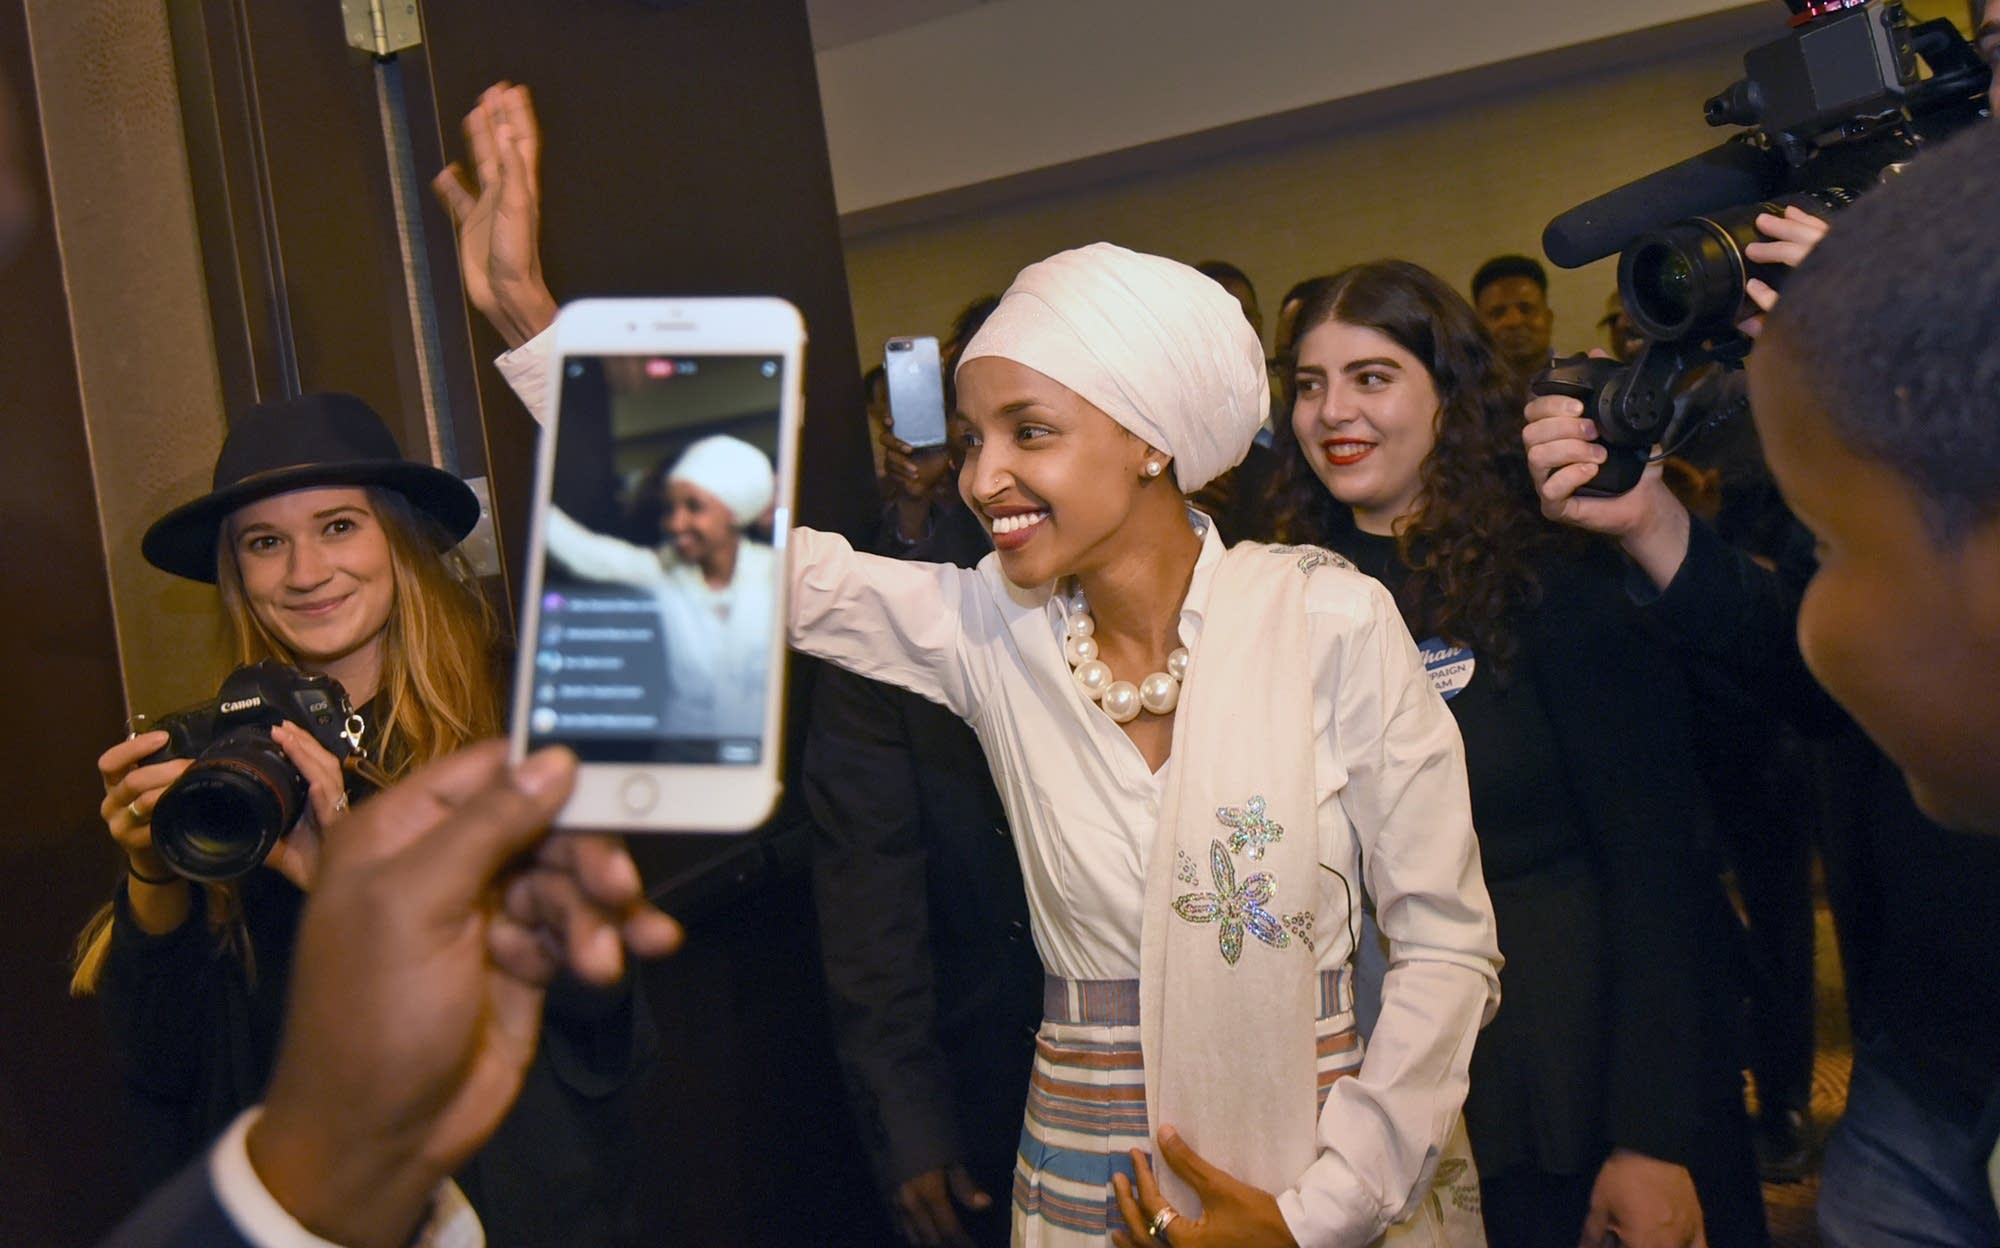 Omar becomes nation's first Somali-American lawmaker